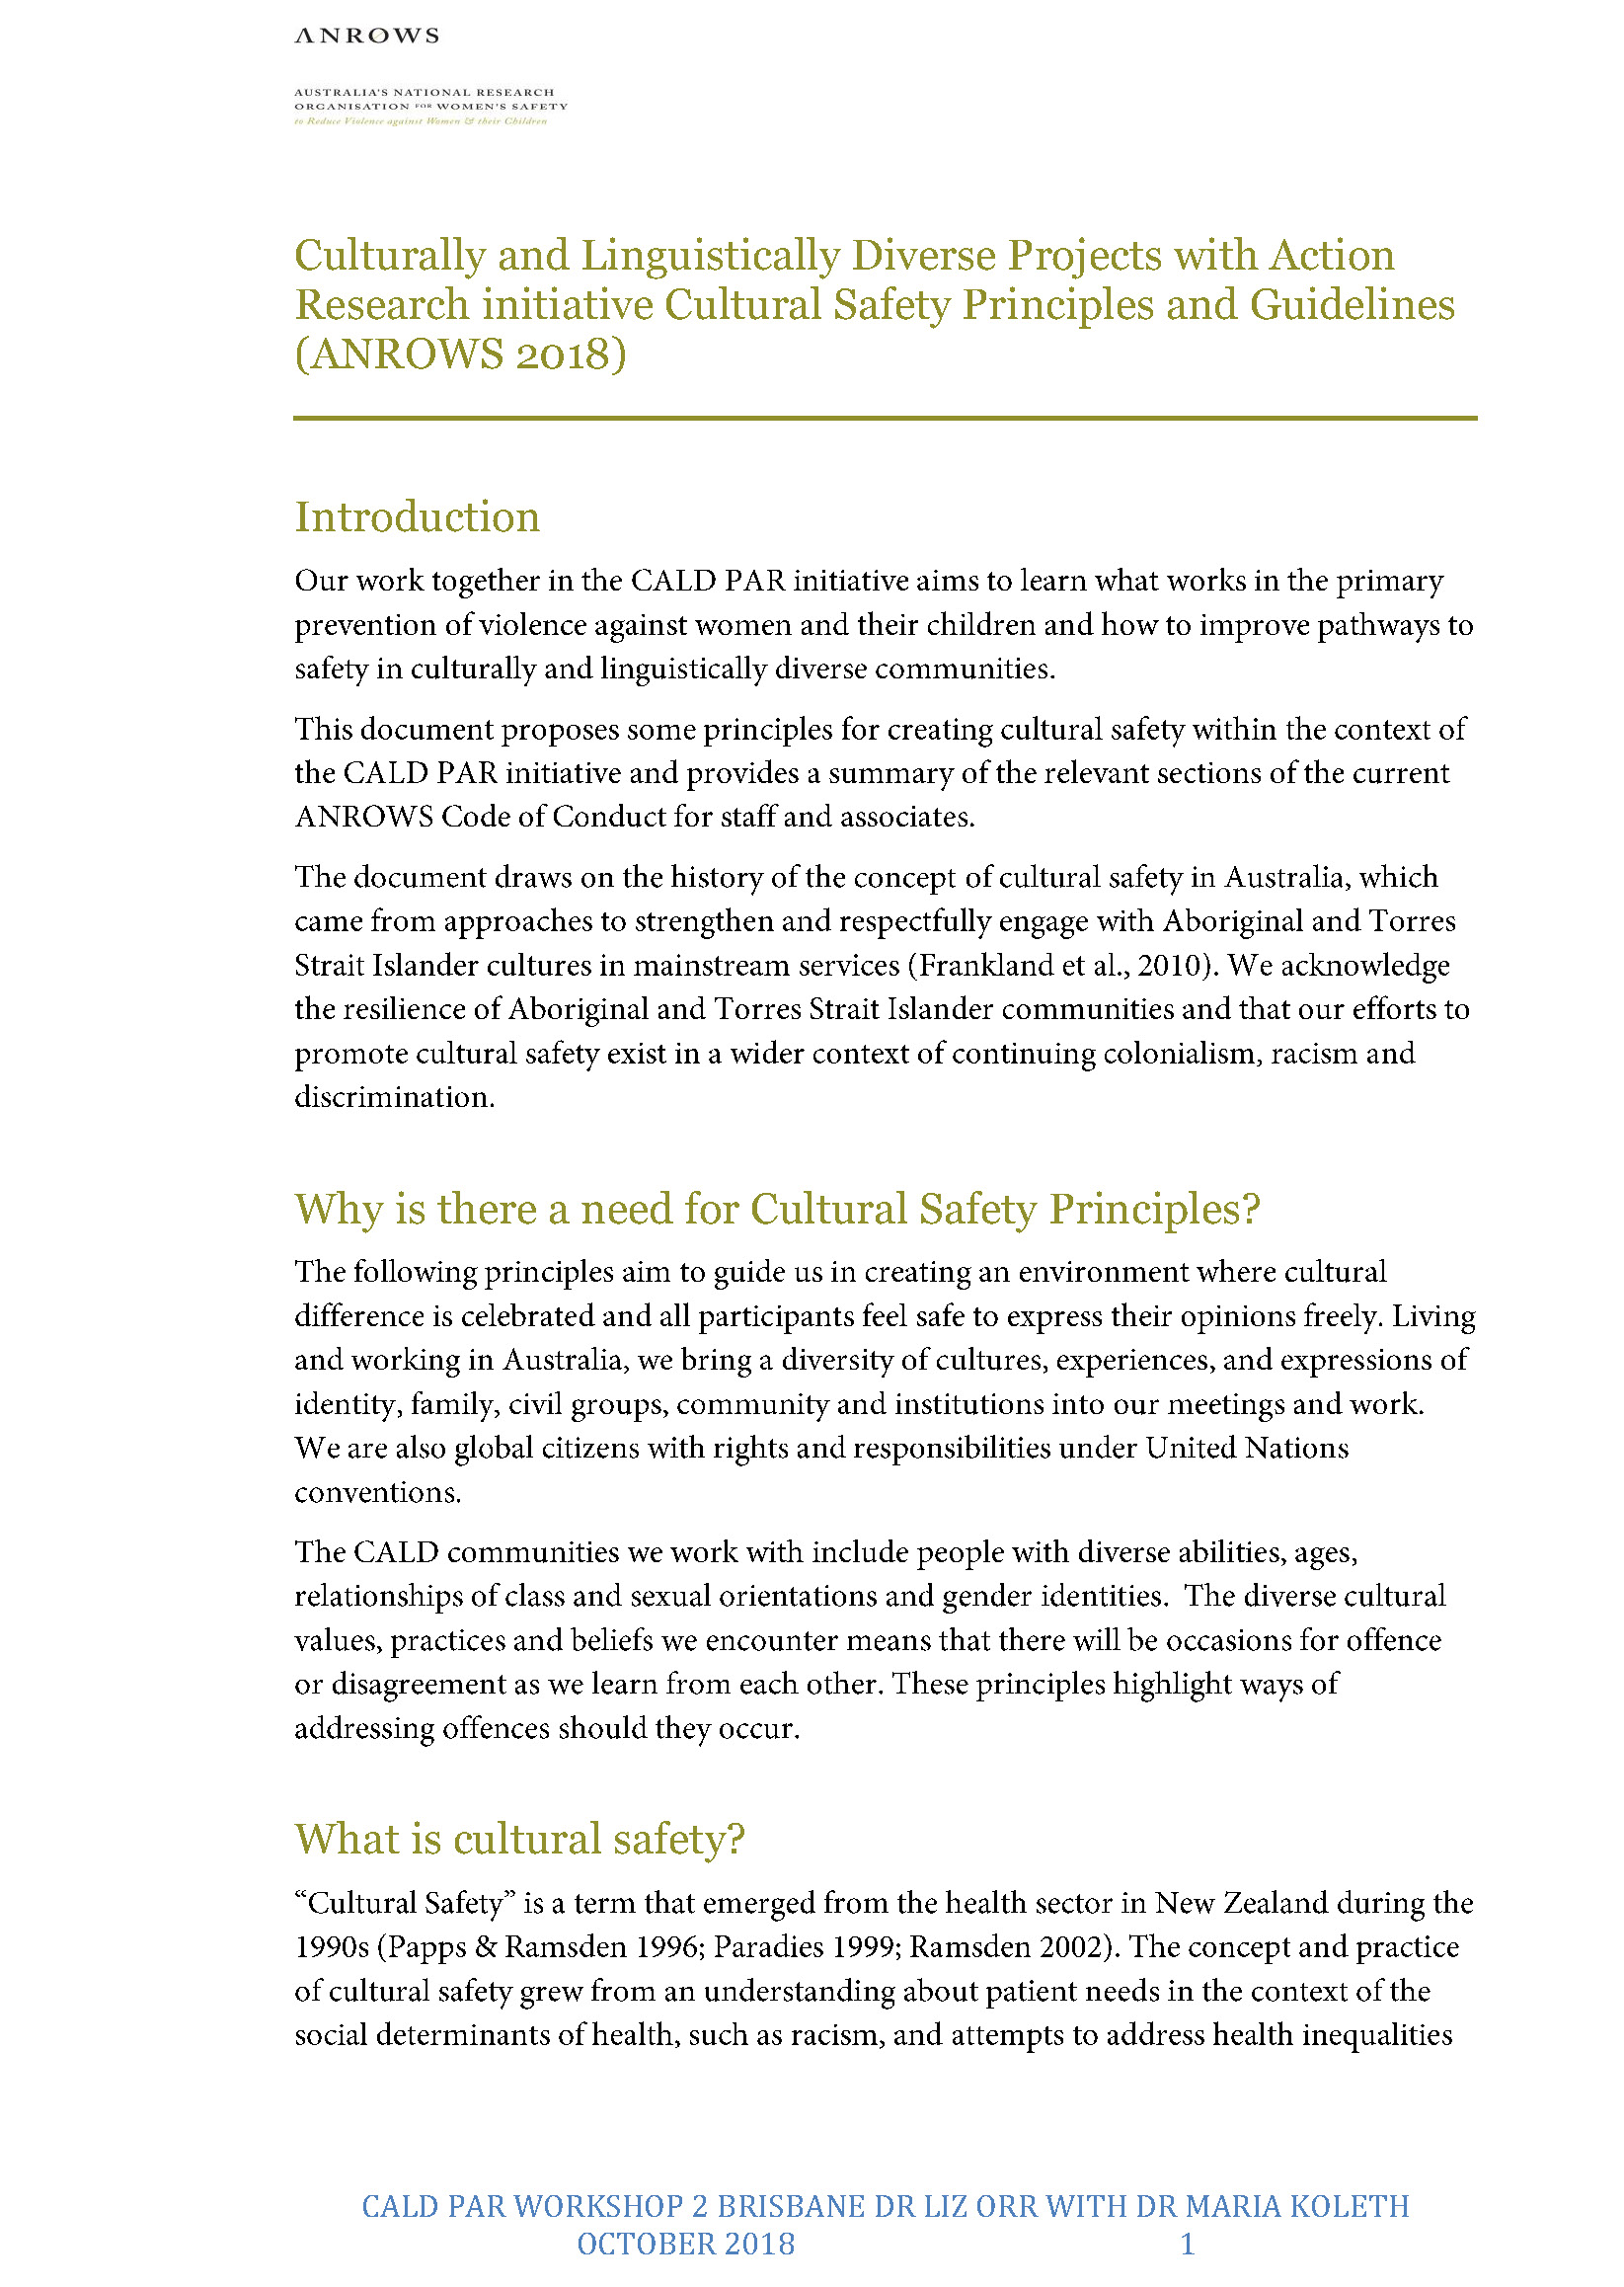 Cultural Safety Principles and Guidelines